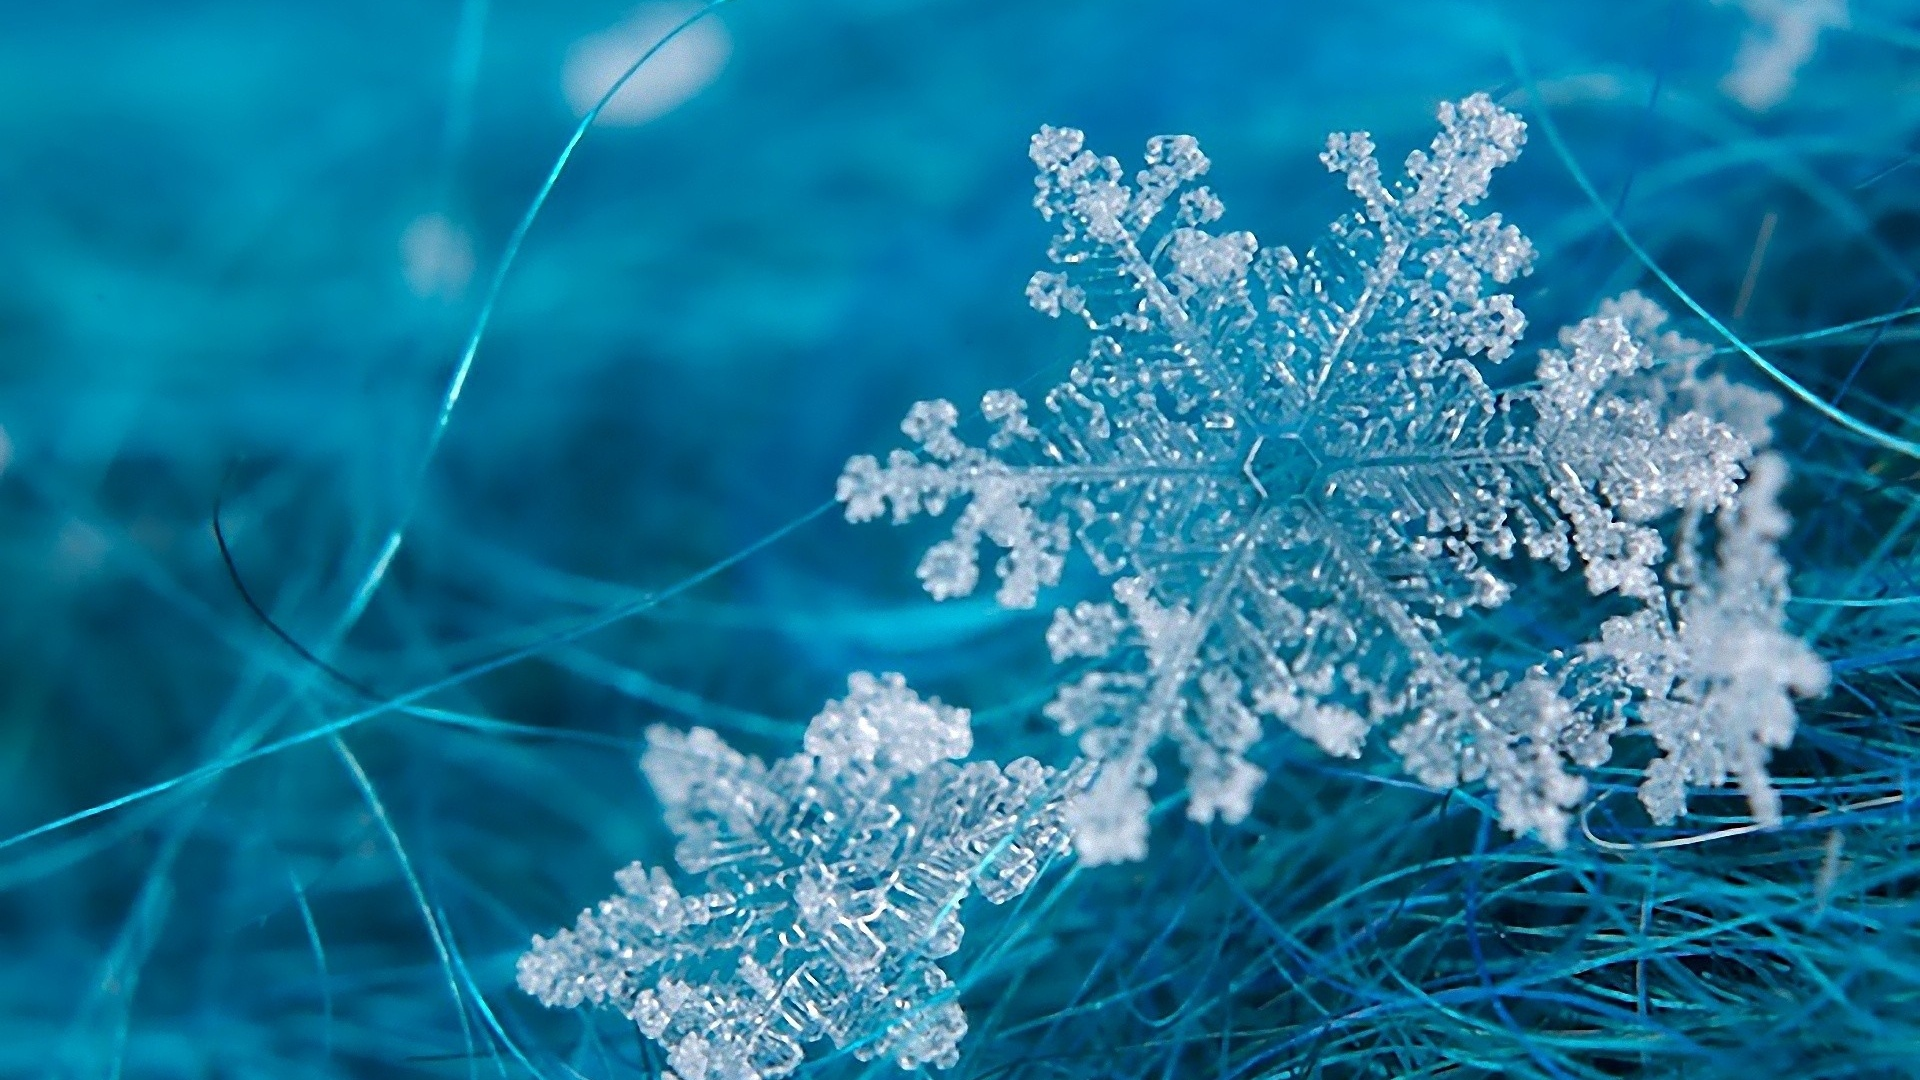 Snowflake Wallpaper Wallpapersafari